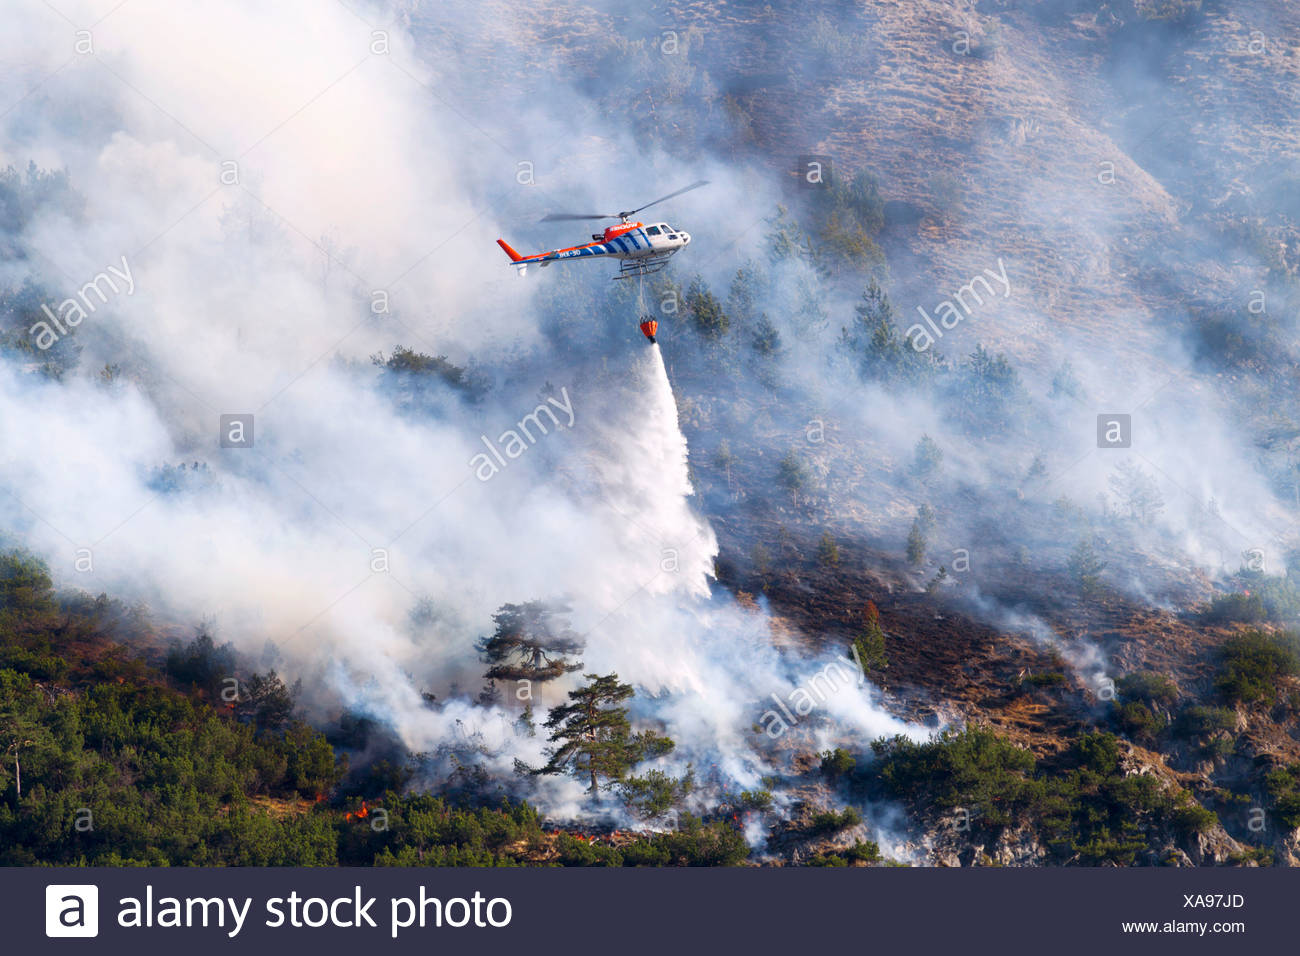 Helicopter dumping water during a forest fire, Tyrol, Austria - Stock Image